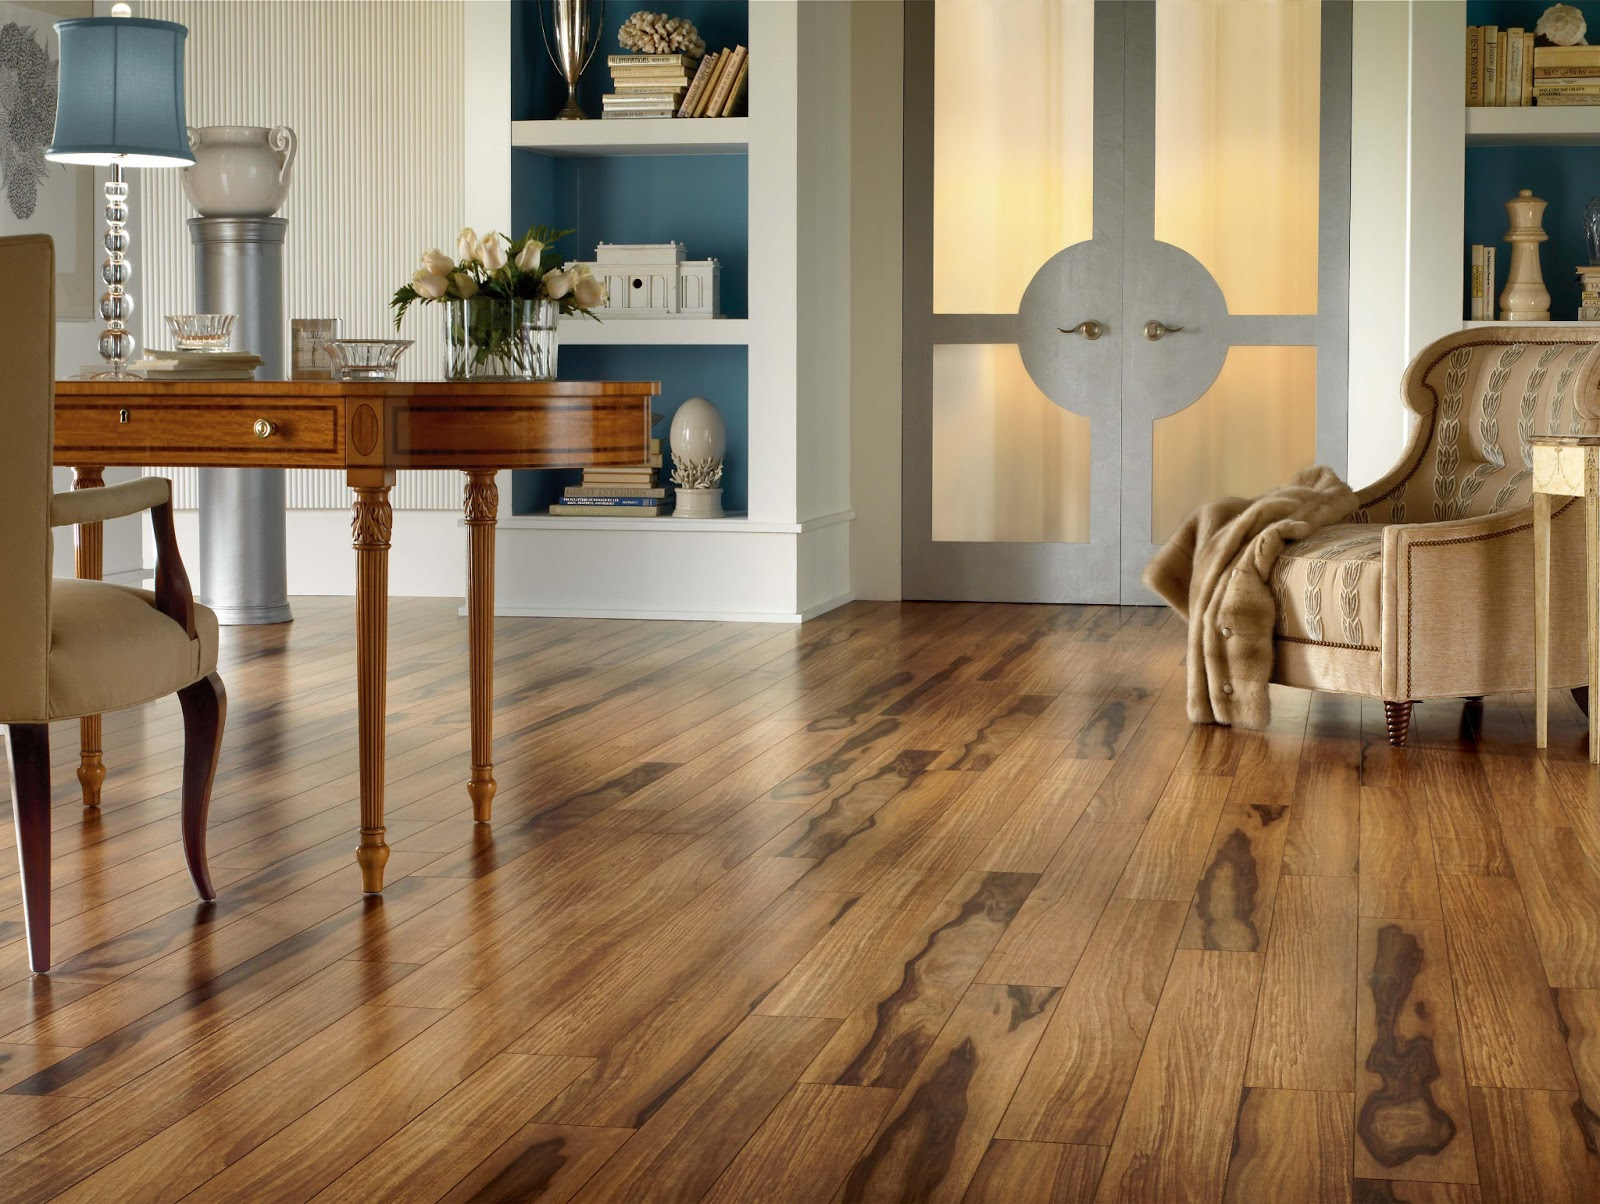 Wood or wood like which flooring should i choose dzine for Floating laminate floor